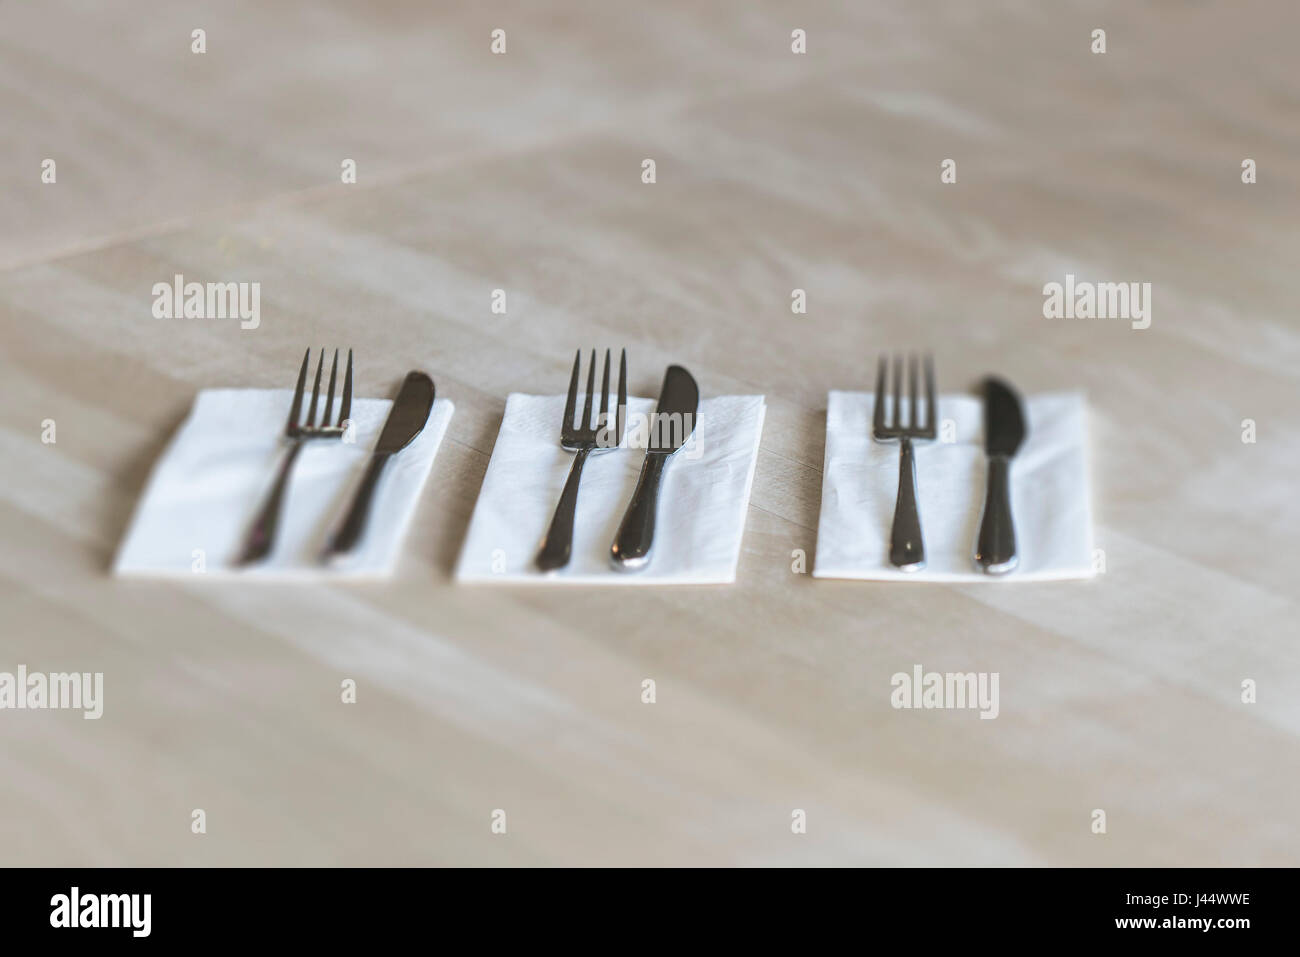 Cutlery on a table in a restaurant Knives Forks Napkins Serviettes Clean Unused Utensils - Stock Image